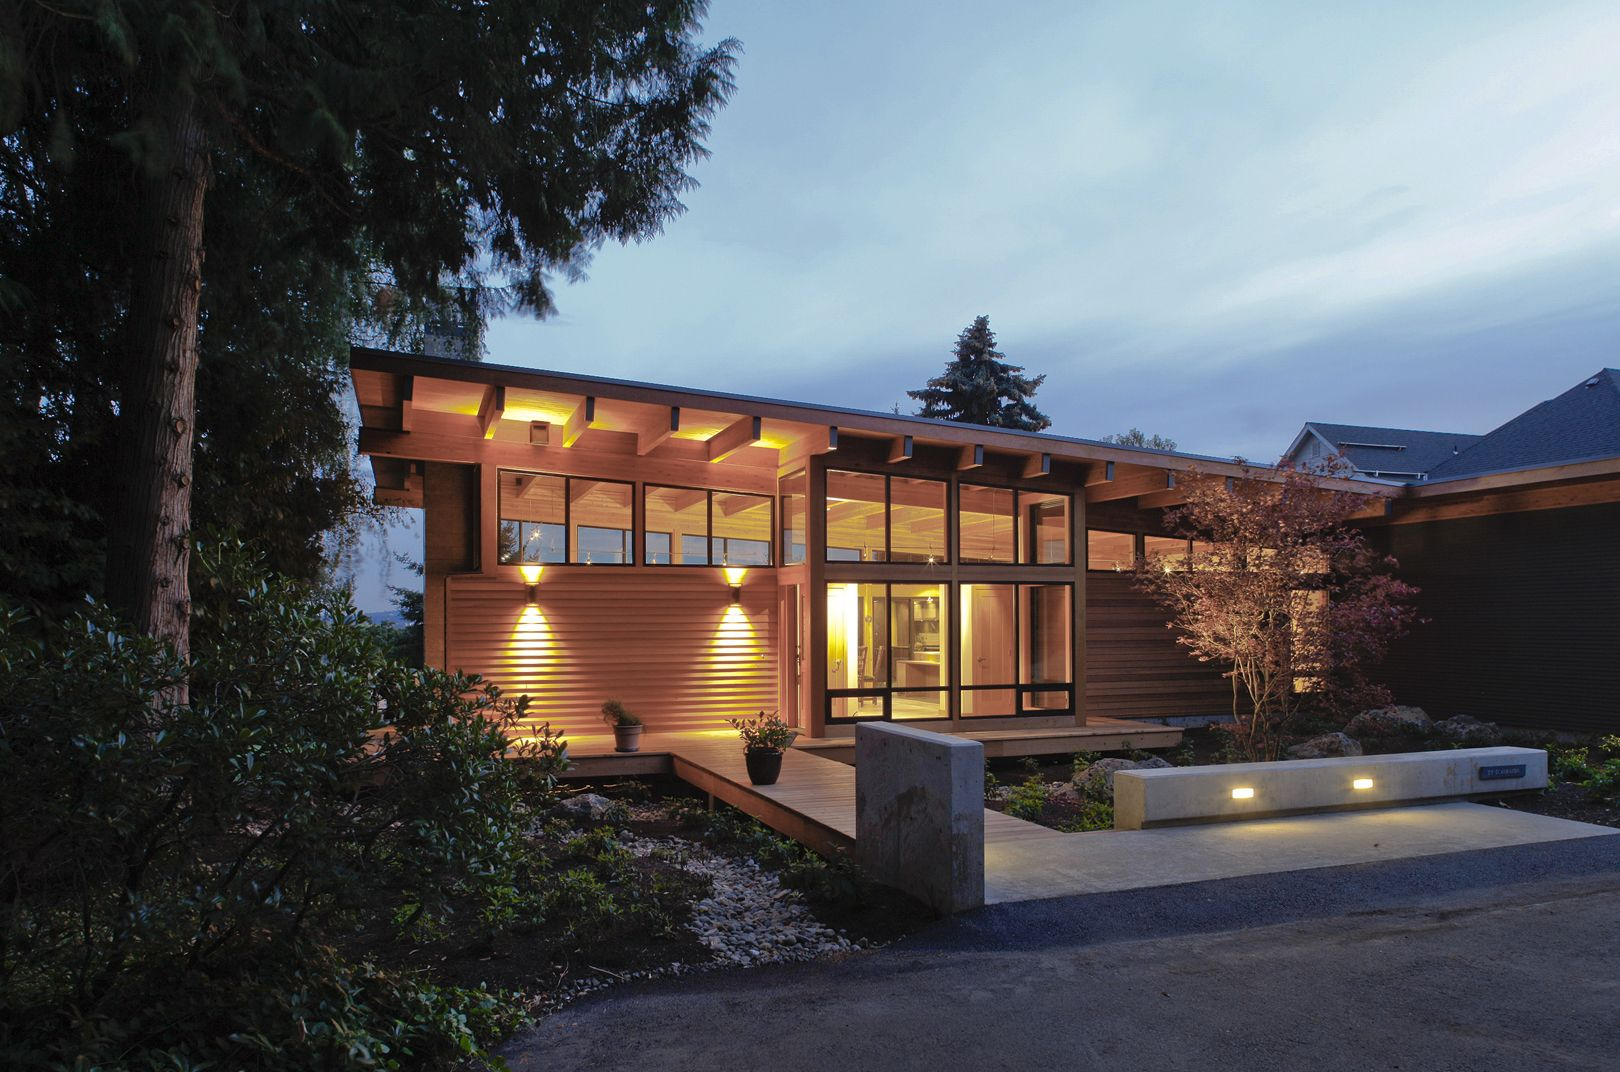 Vancouver airport home pacific northwest modern home for Home designs northwest